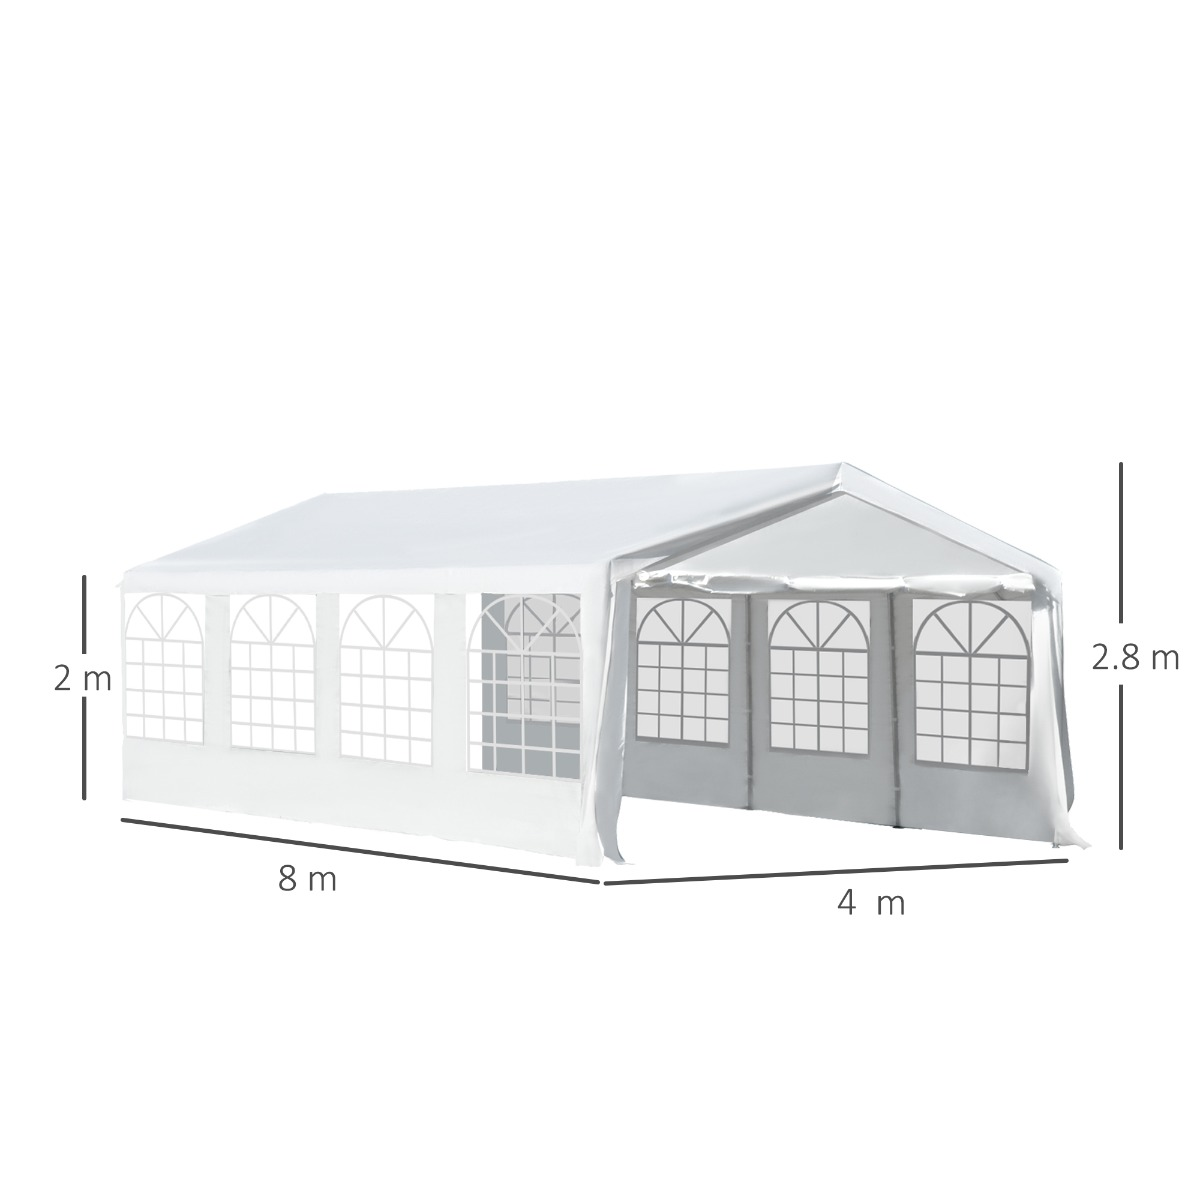 Image of £289.99 Outsunny Gazebo Marquee Water Resistant White / Garden Party Tent Wedding Portable Garage Carport shelter Car Canopy Outdoor Heavy Duty Steel Frame Waterproof Rot (8m x 4m) 01-0803 5060348504610